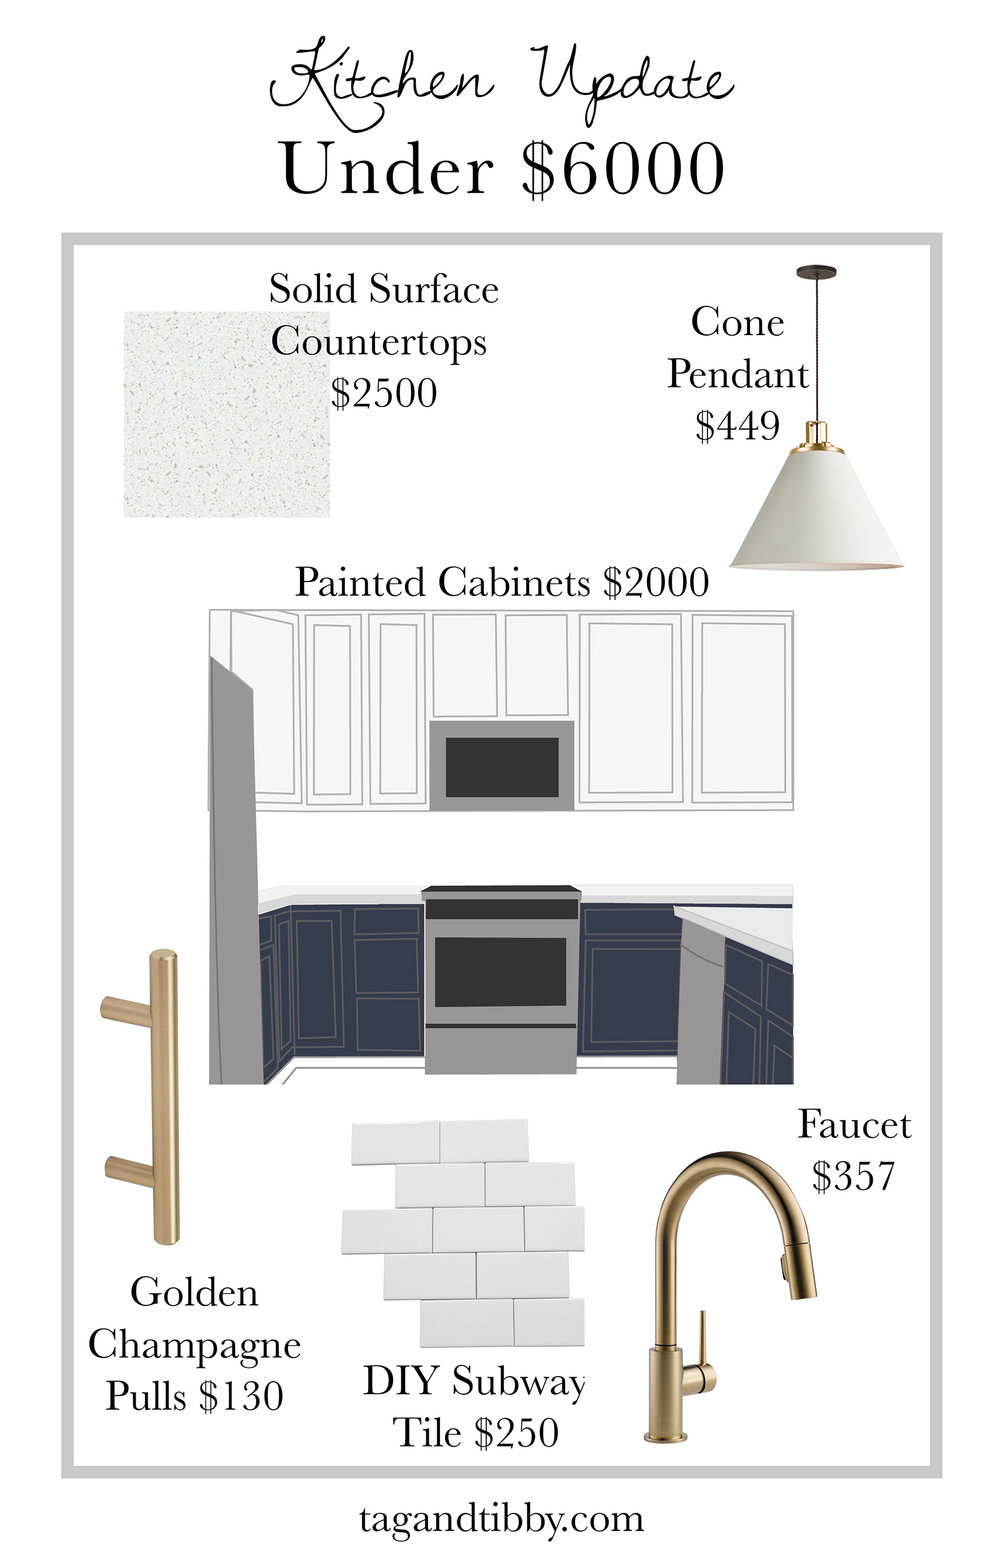 Remodel your kitchen for $6000 with this budget-friendly idea! | Tag & Tibby